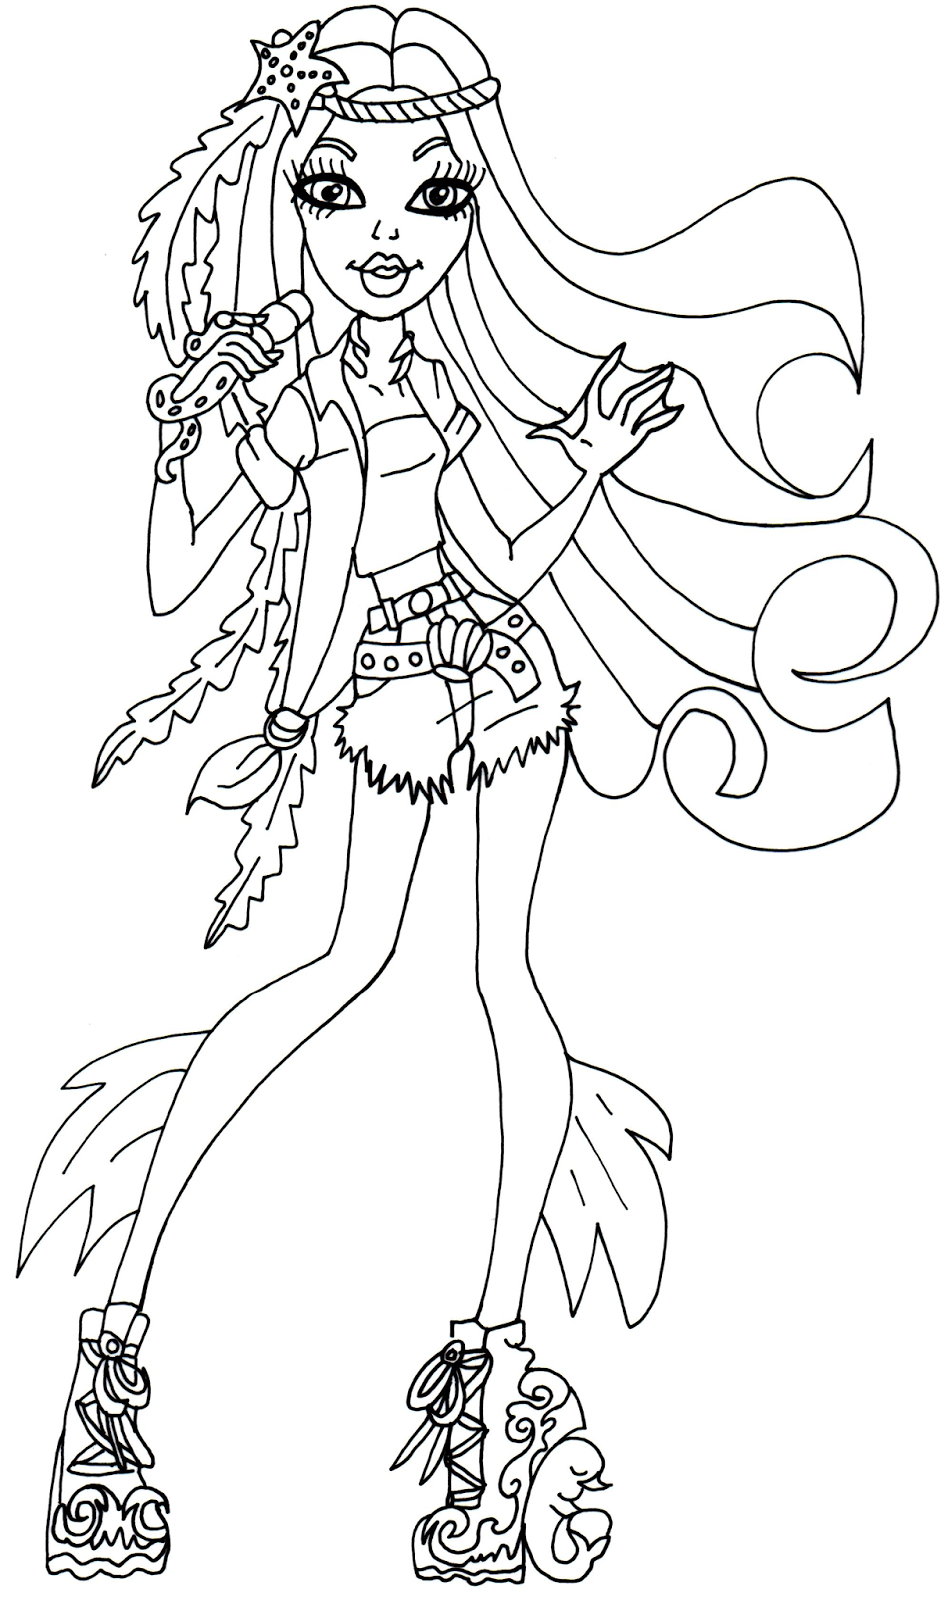 All Monster High Dolls Coloring Pages Az Coloring Pages High Dolls Coloring Pages